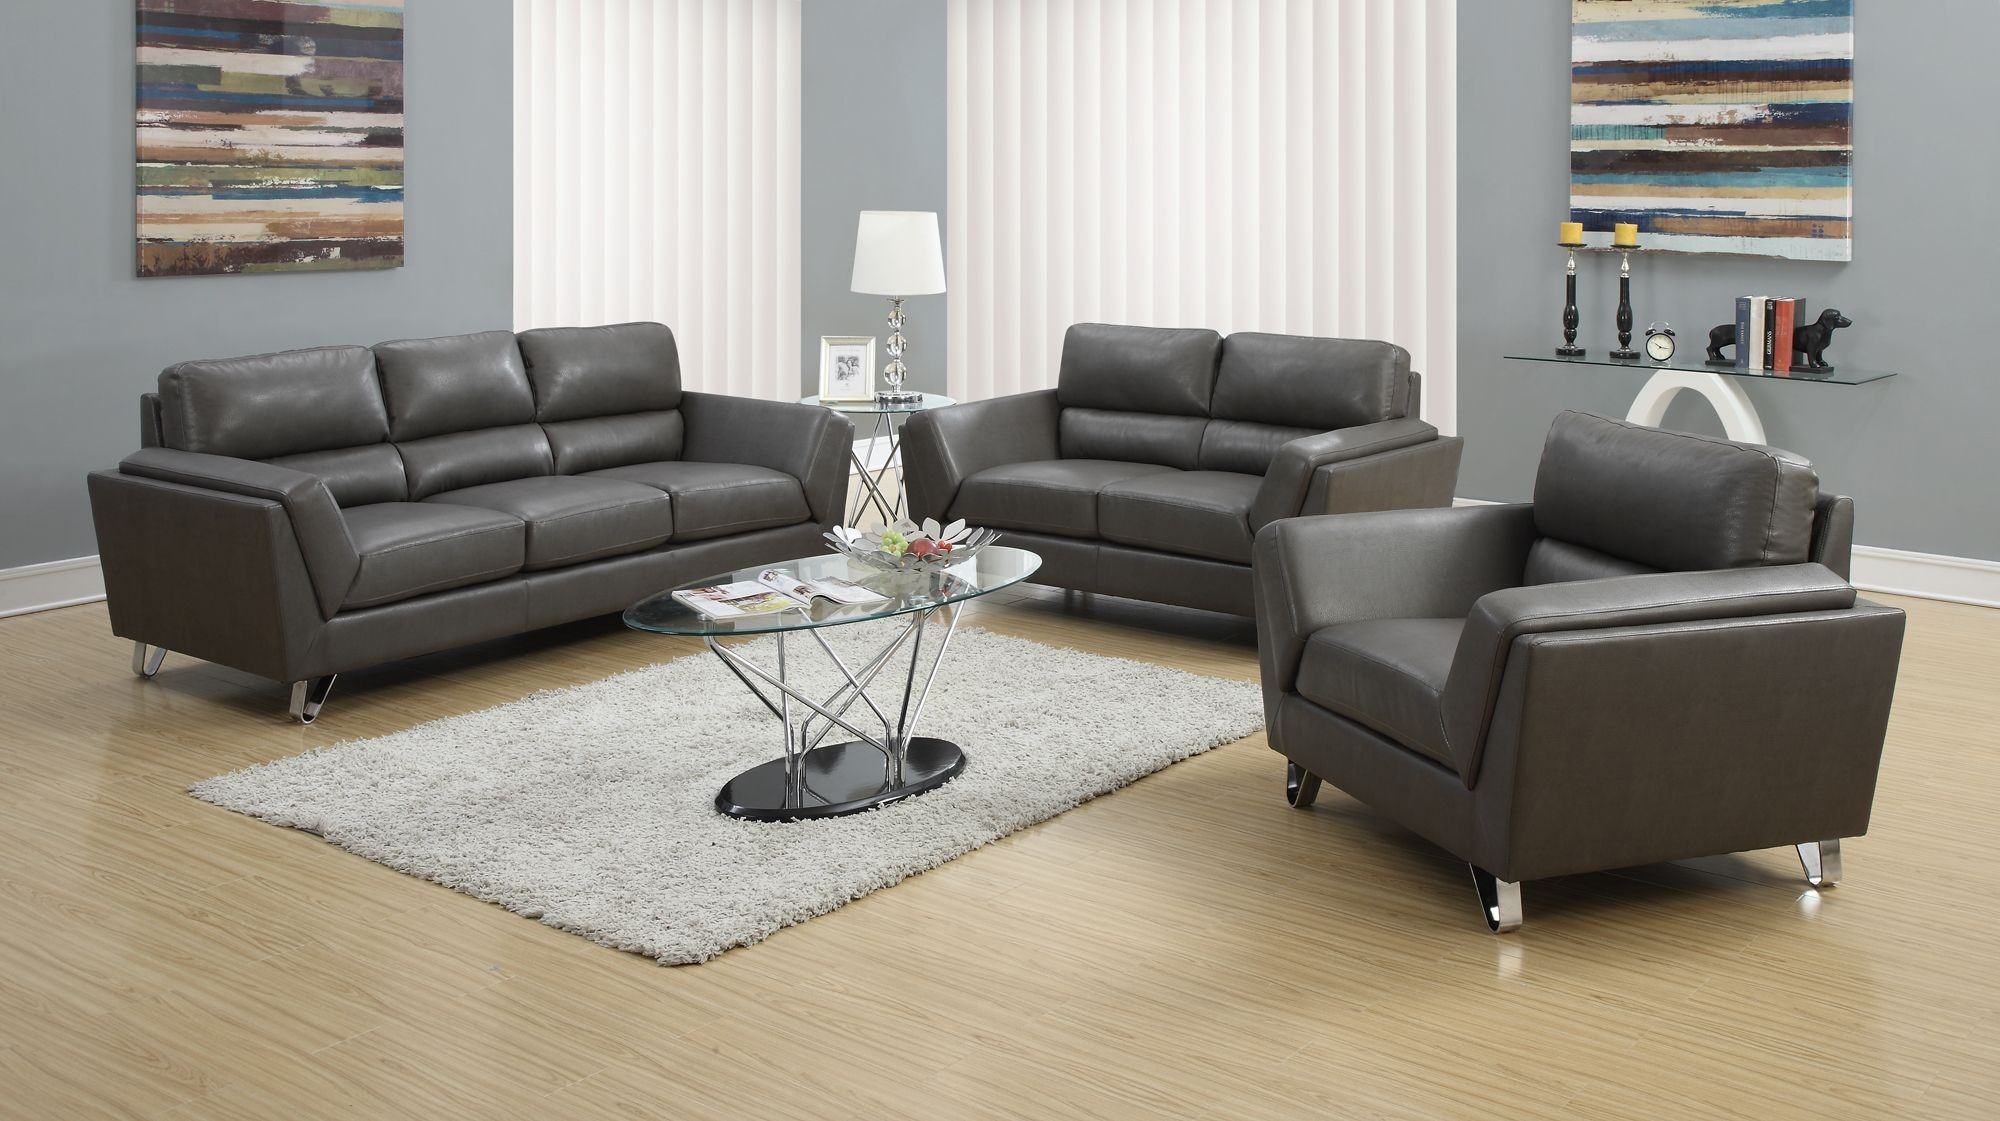 Charcoal Gray Match Sofa 8203GY From Monarch (8203GY